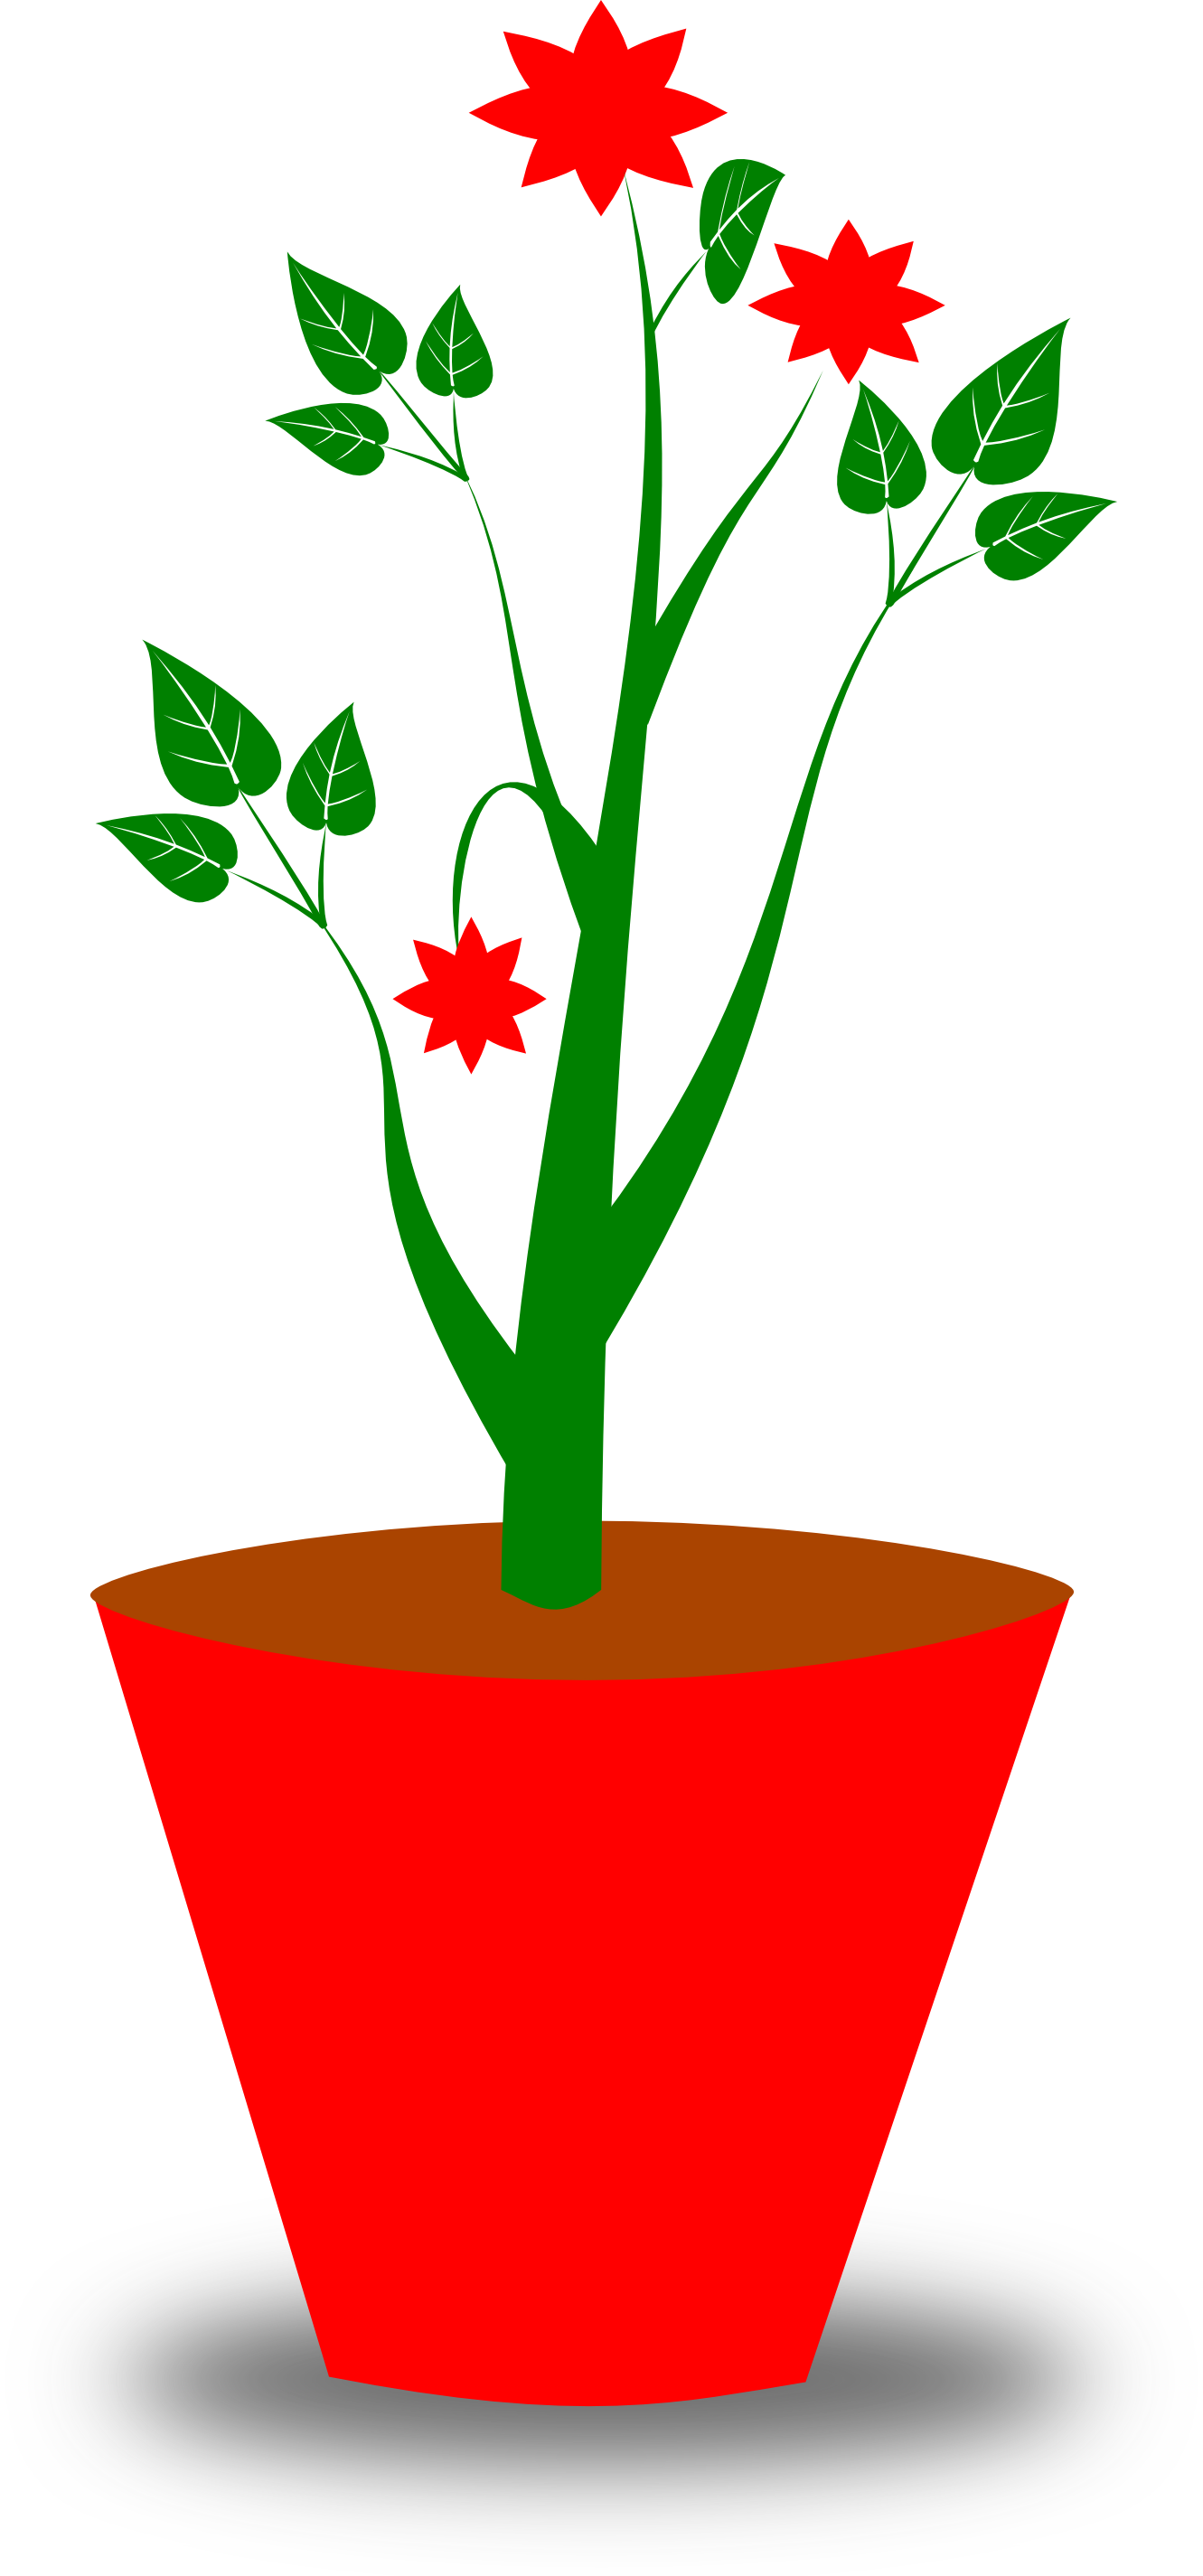 Flower in a pot clipart clip art freeuse Flower Potted Plant Clipart - Clipart Kid clip art freeuse